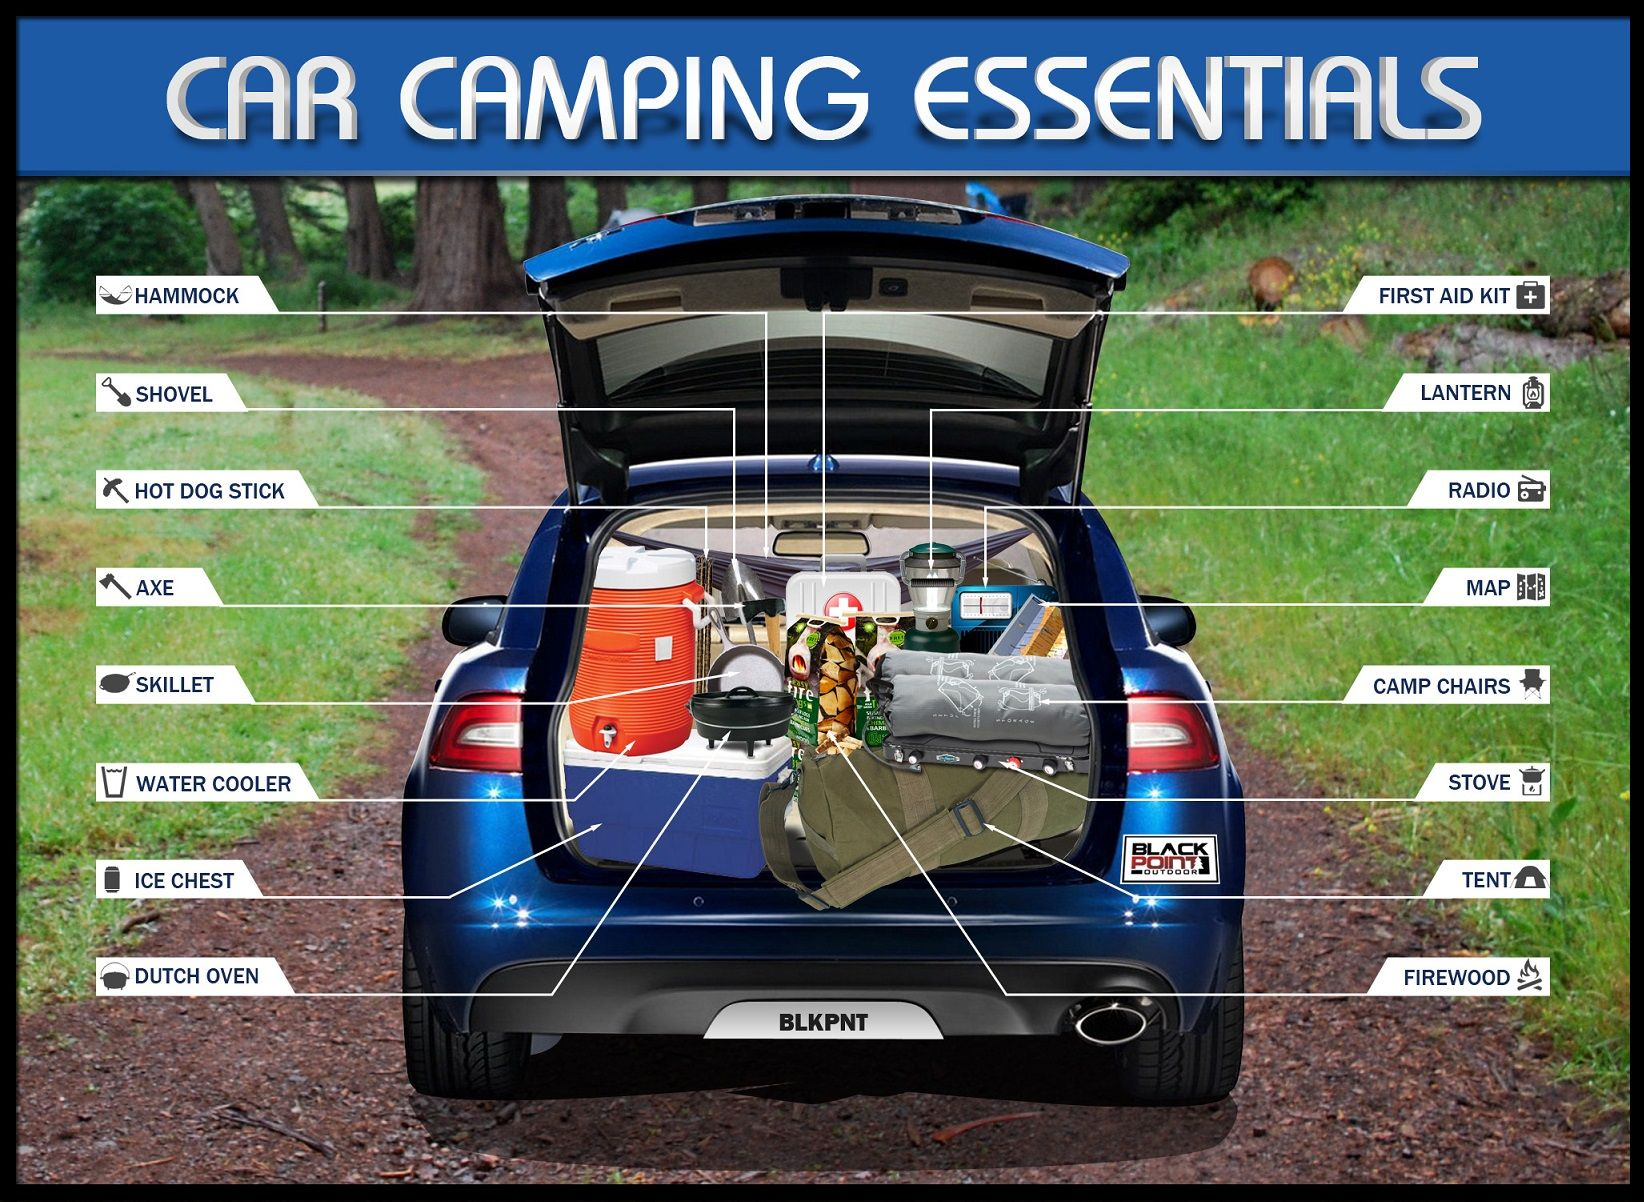 Theres Ultralight Backpacking And Glamping But Somewhere In Between Car Camping